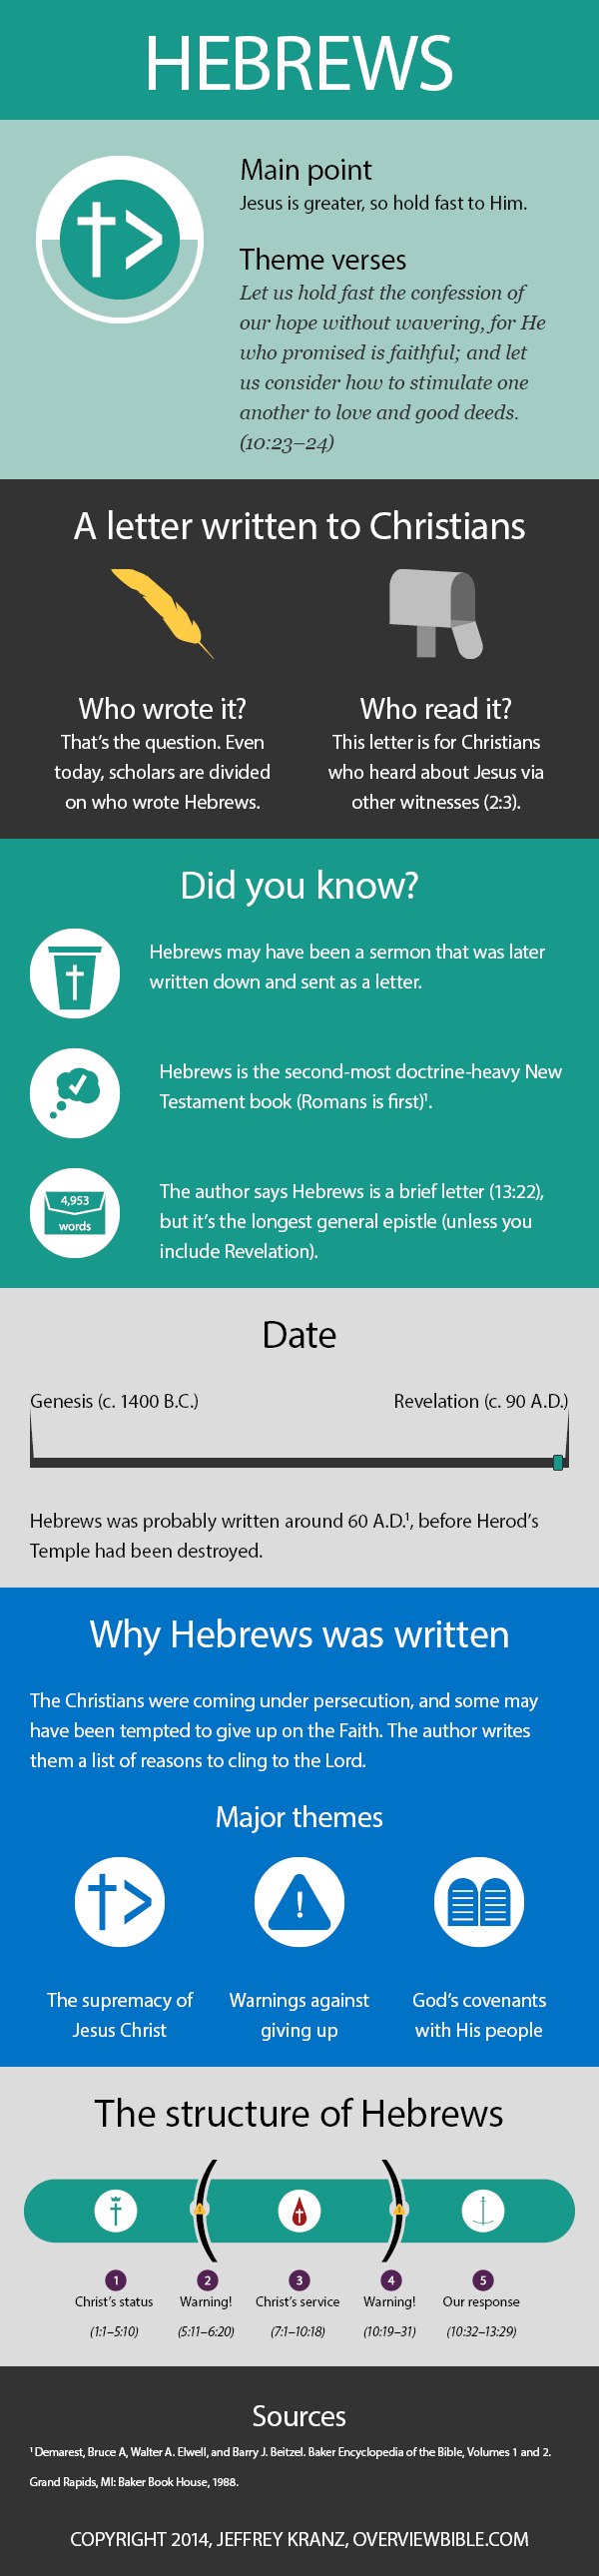 Hebrews: the infographic